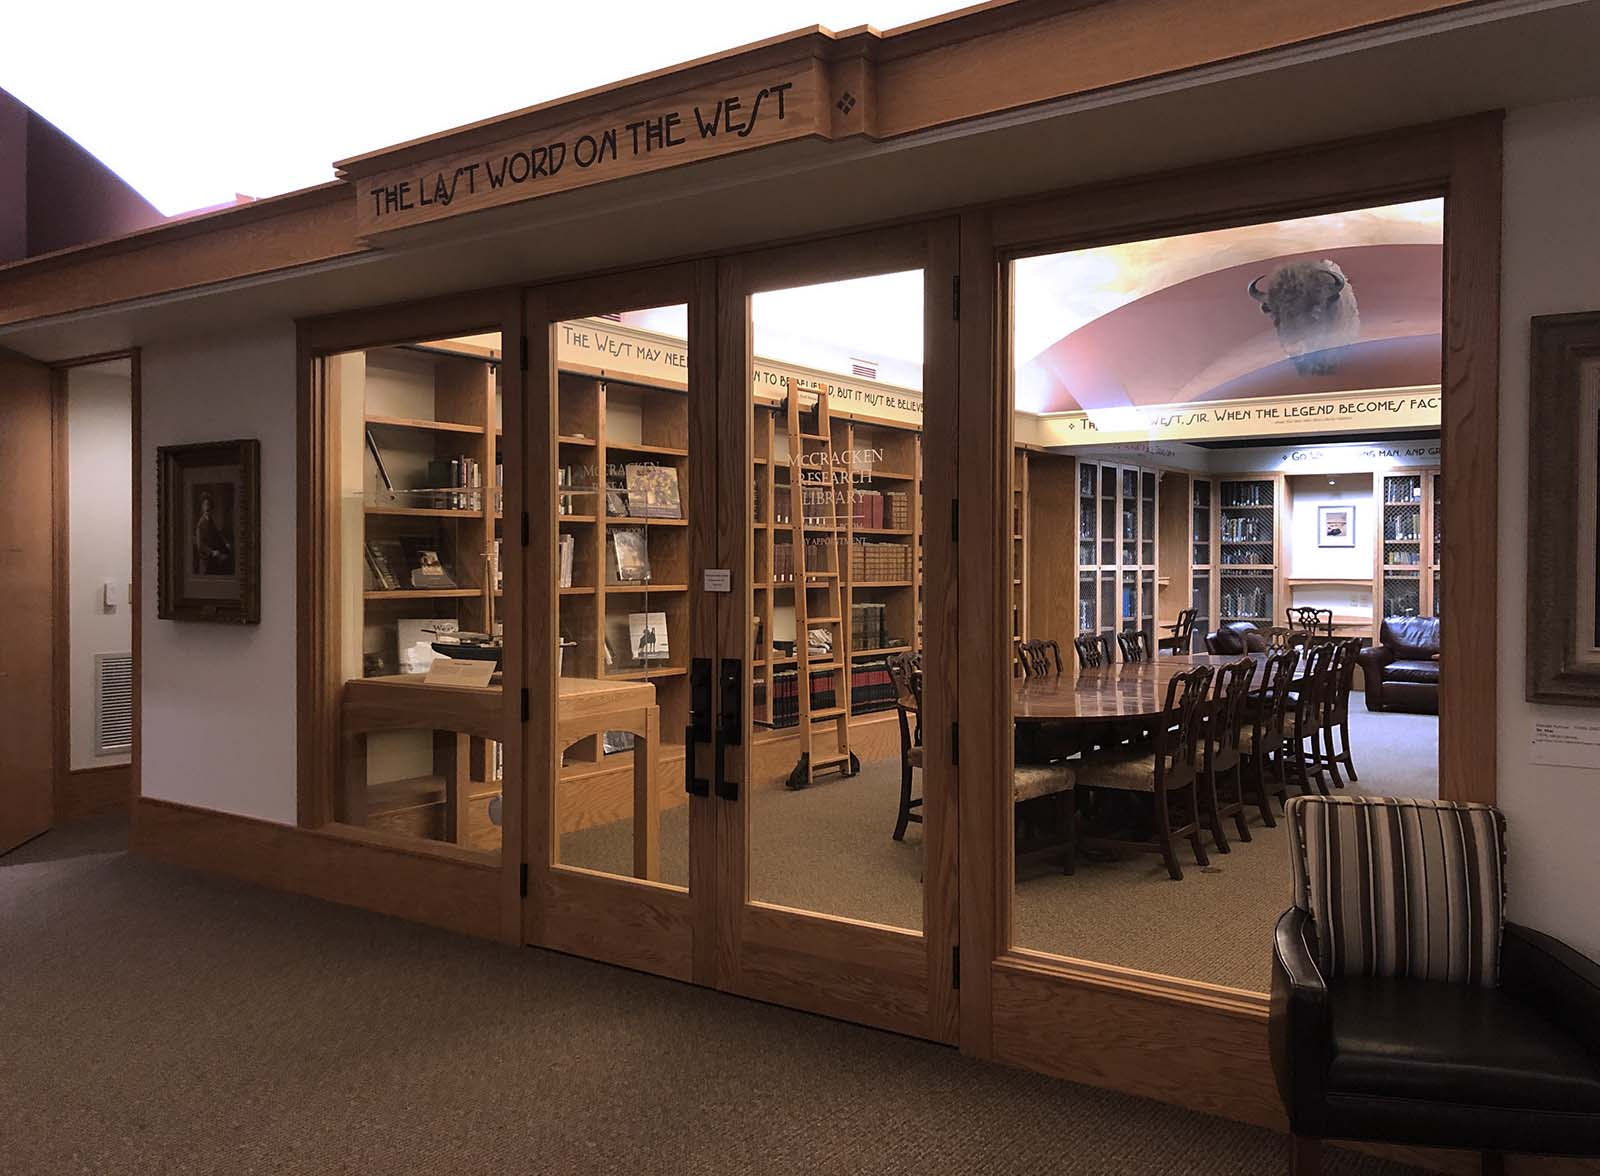 As the McCracken's collection has grown, so has the library's space changed. Looking into the Reading Room from the Library Gallery in 2020.